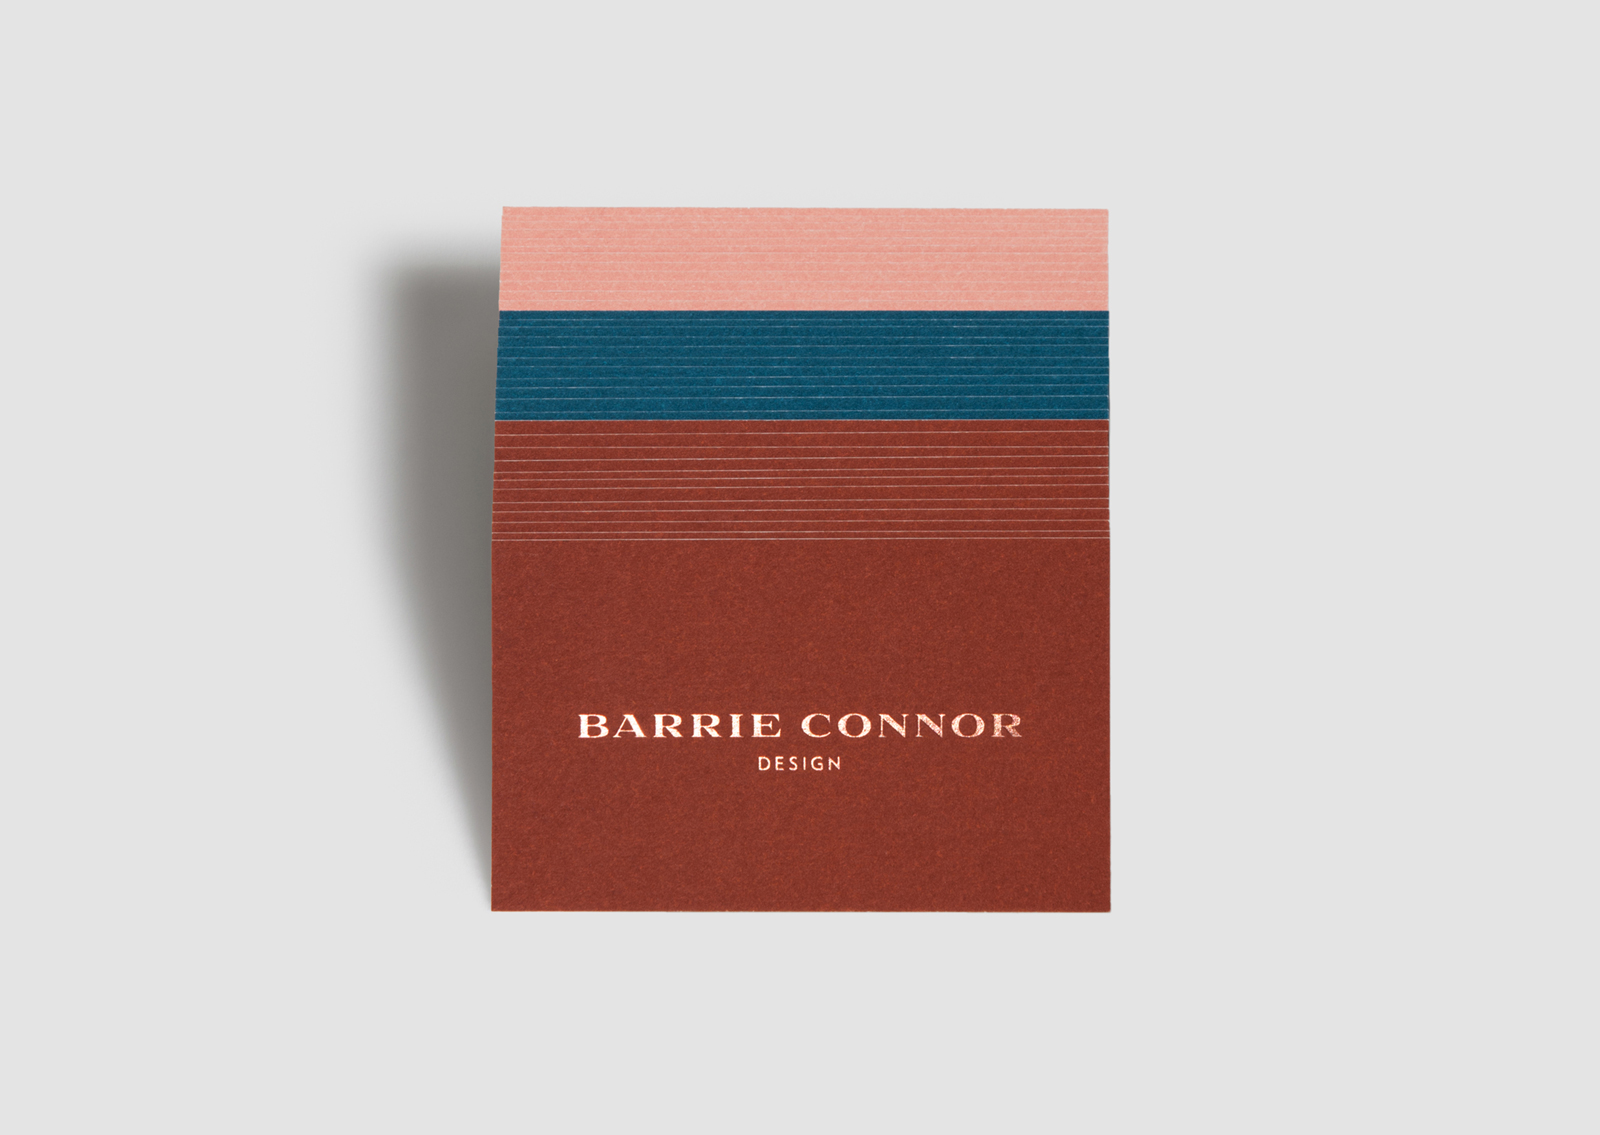 Barrie Connor Design buiness cards – trio of swatch cards in a stack